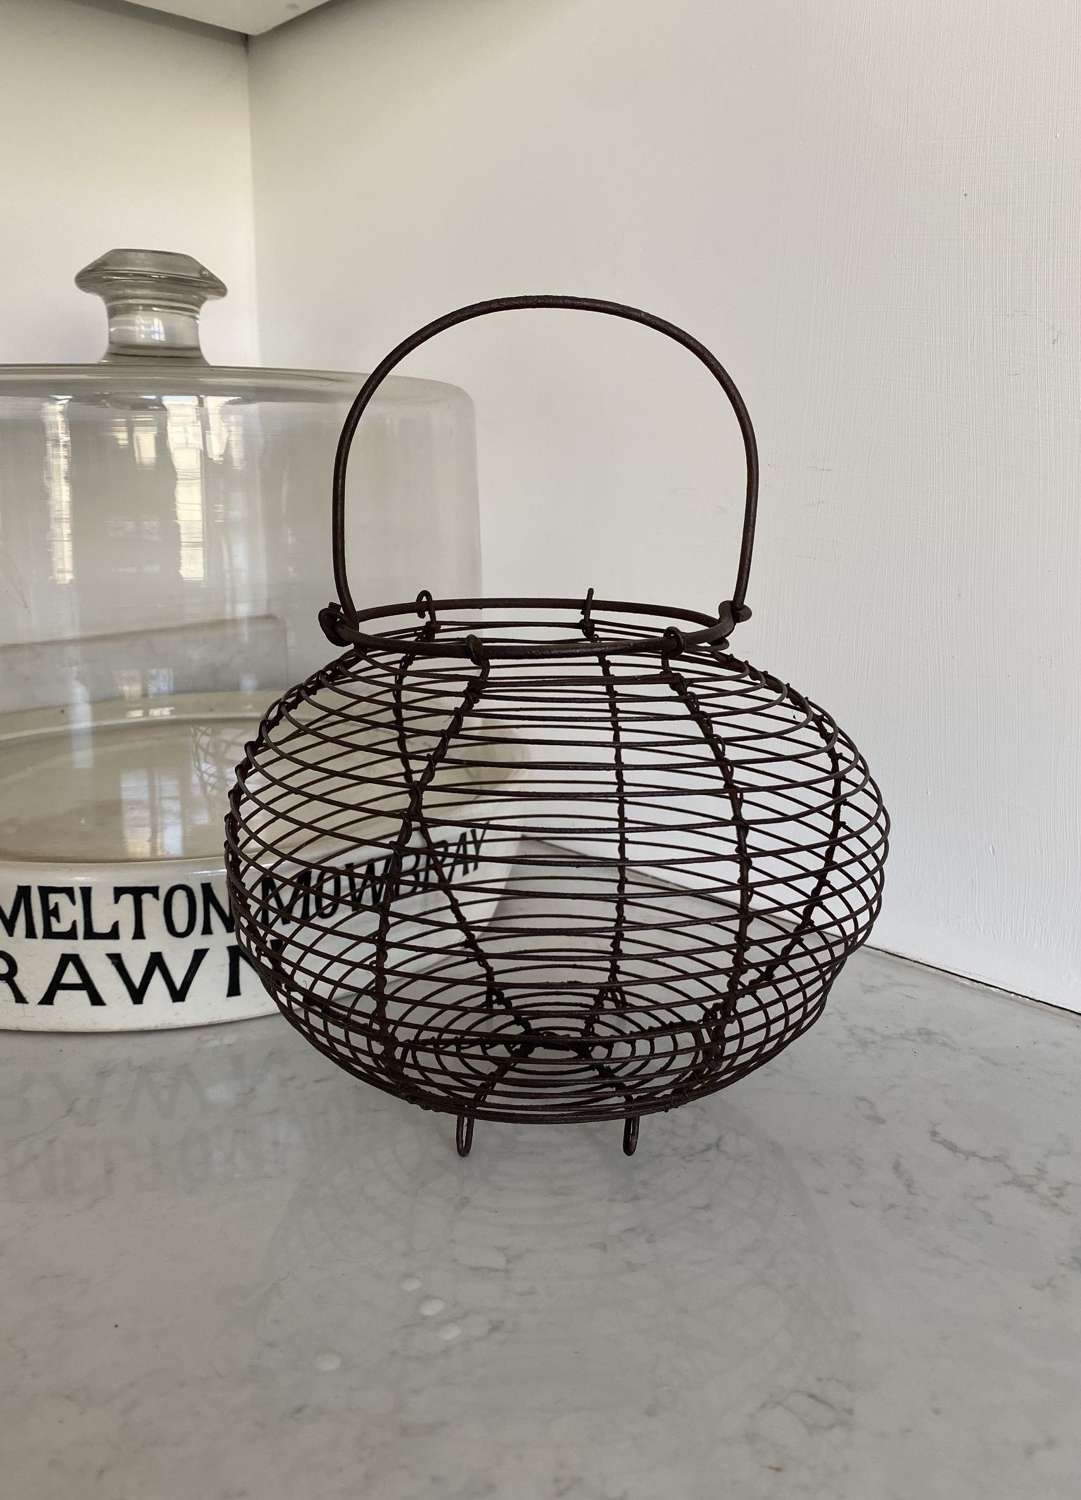 Antique Wire Work Egg Basket in Great Condition